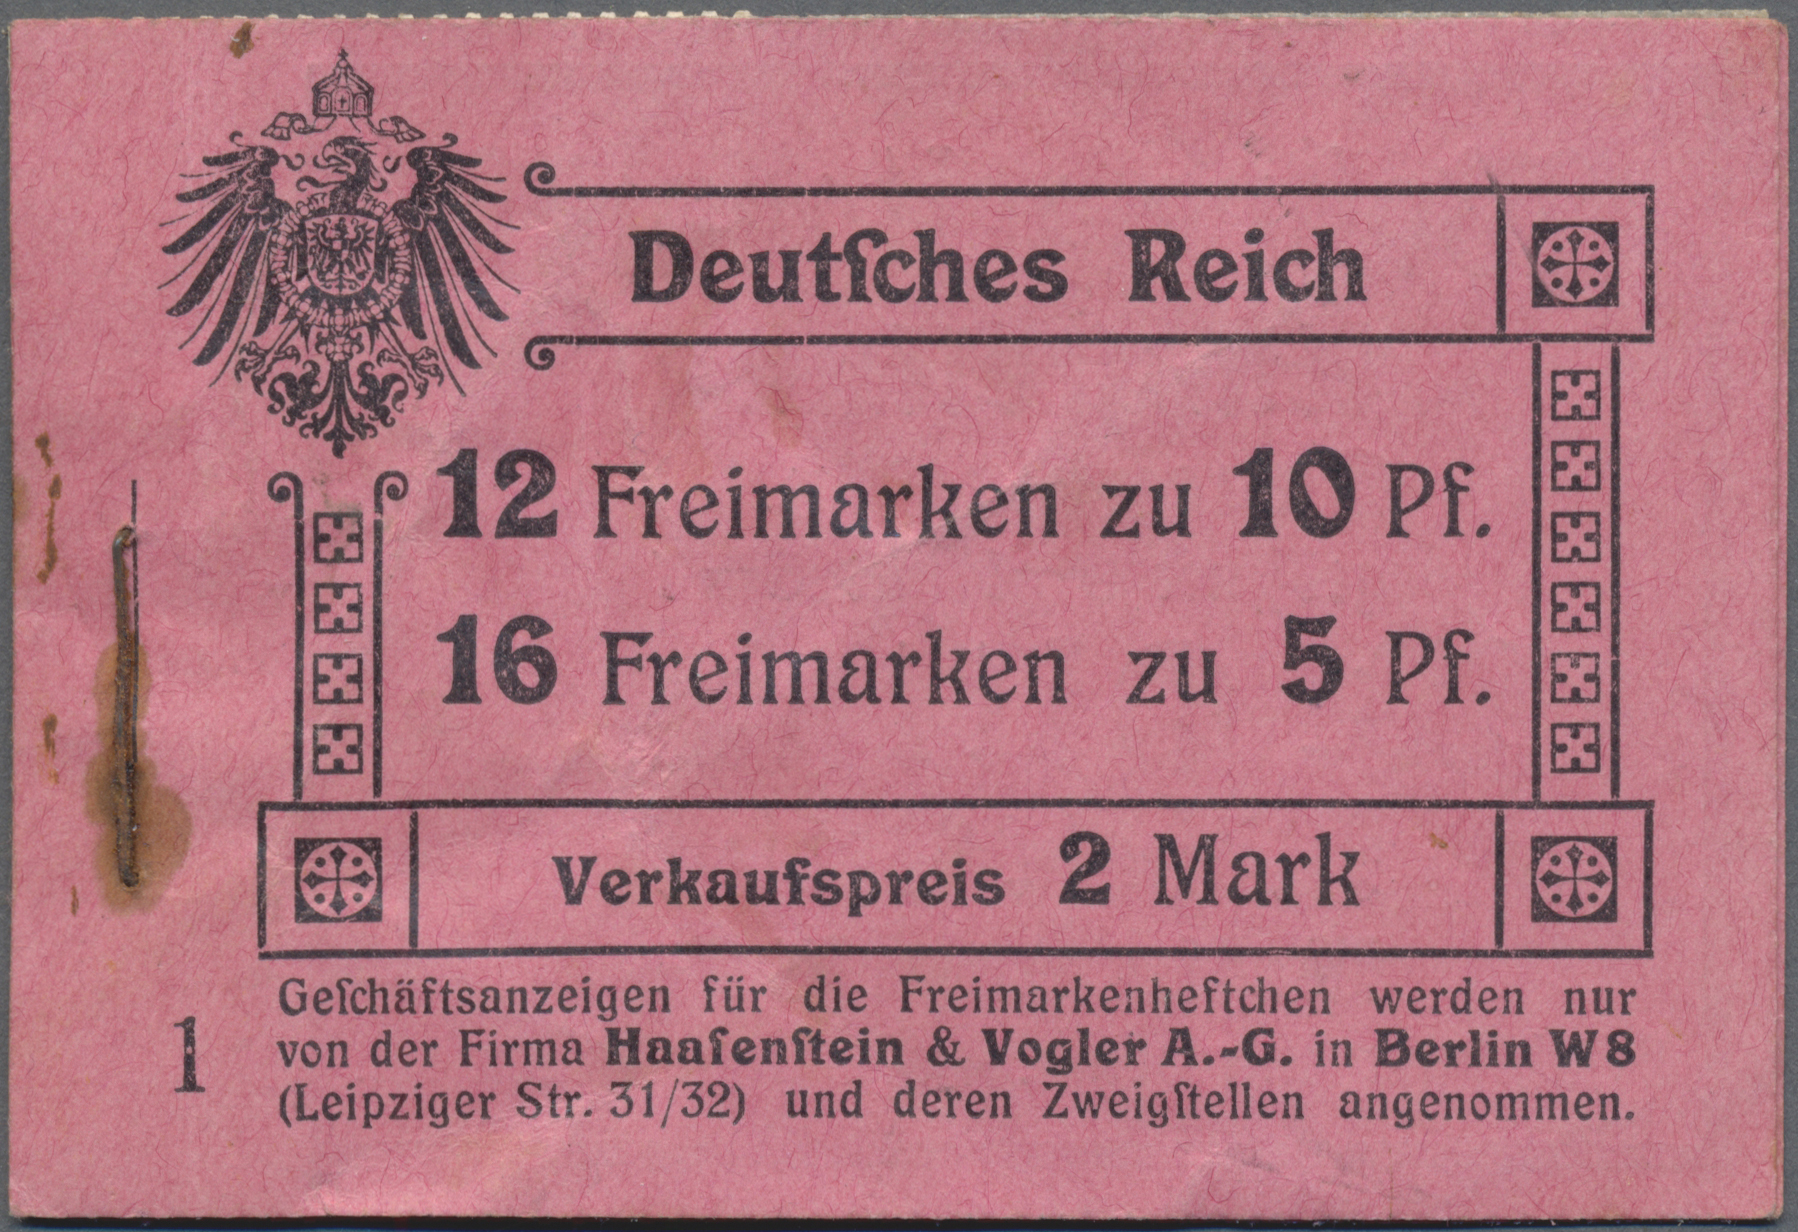 Lot 15981 - Deutsches Reich - Markenheftchen  -  Auktionshaus Christoph Gärtner GmbH & Co. KG Sale #47 Single lots: Germany, Picture Postcards